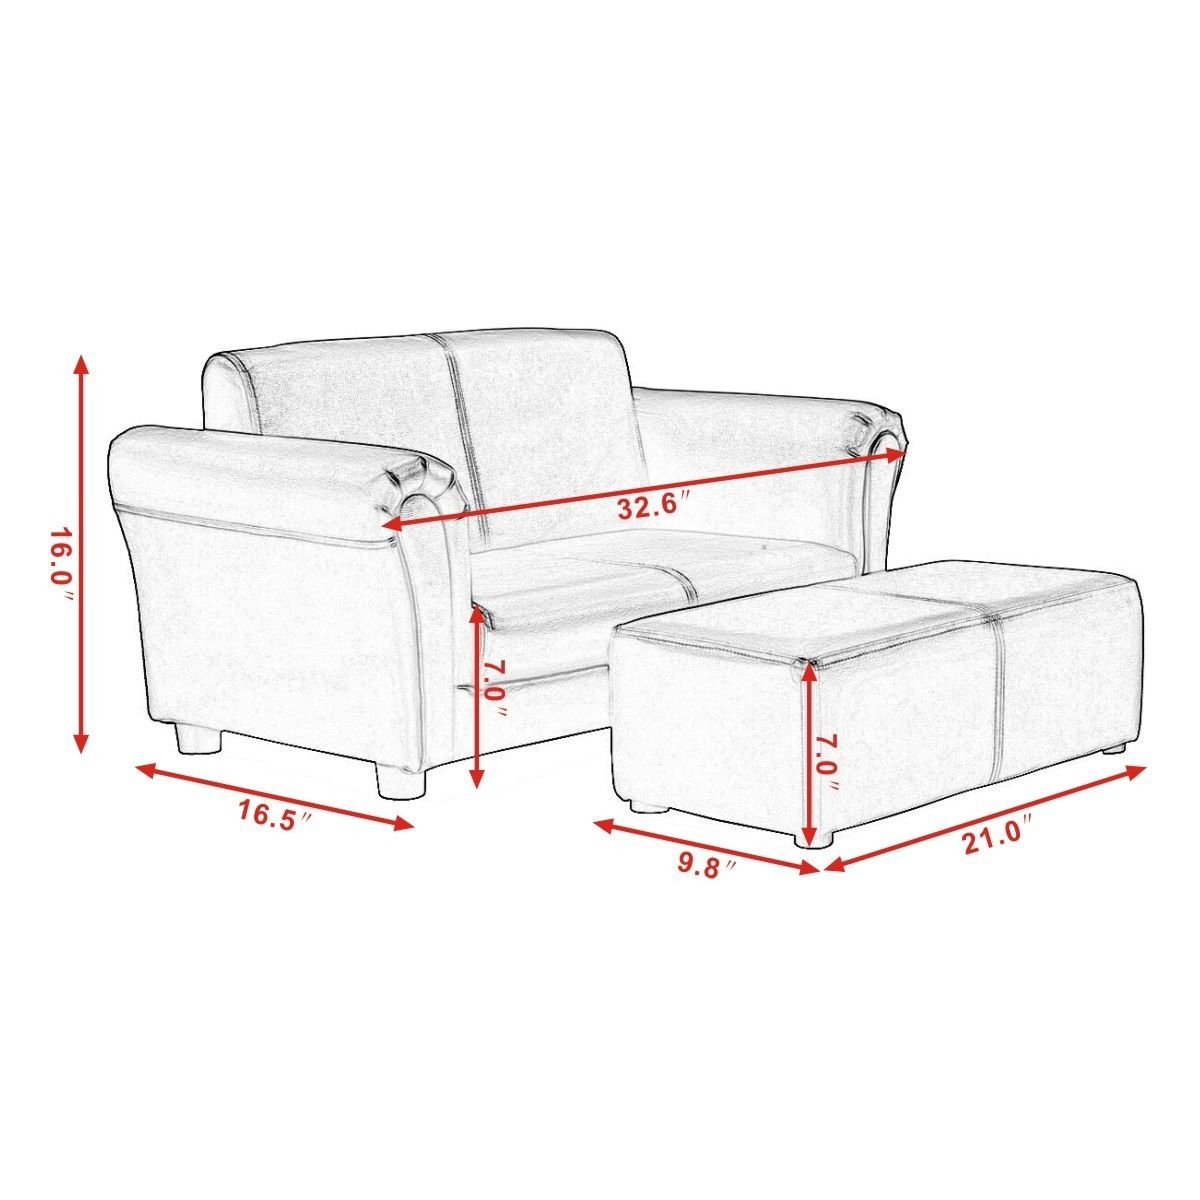 Kids Sofa With Ottoman White Color Armrest Chair Armchair Seat Couch Children Living Room Bedroom Playroom Lounge Lounger Furniture Toddler Gift Comfortable Material Lightweight